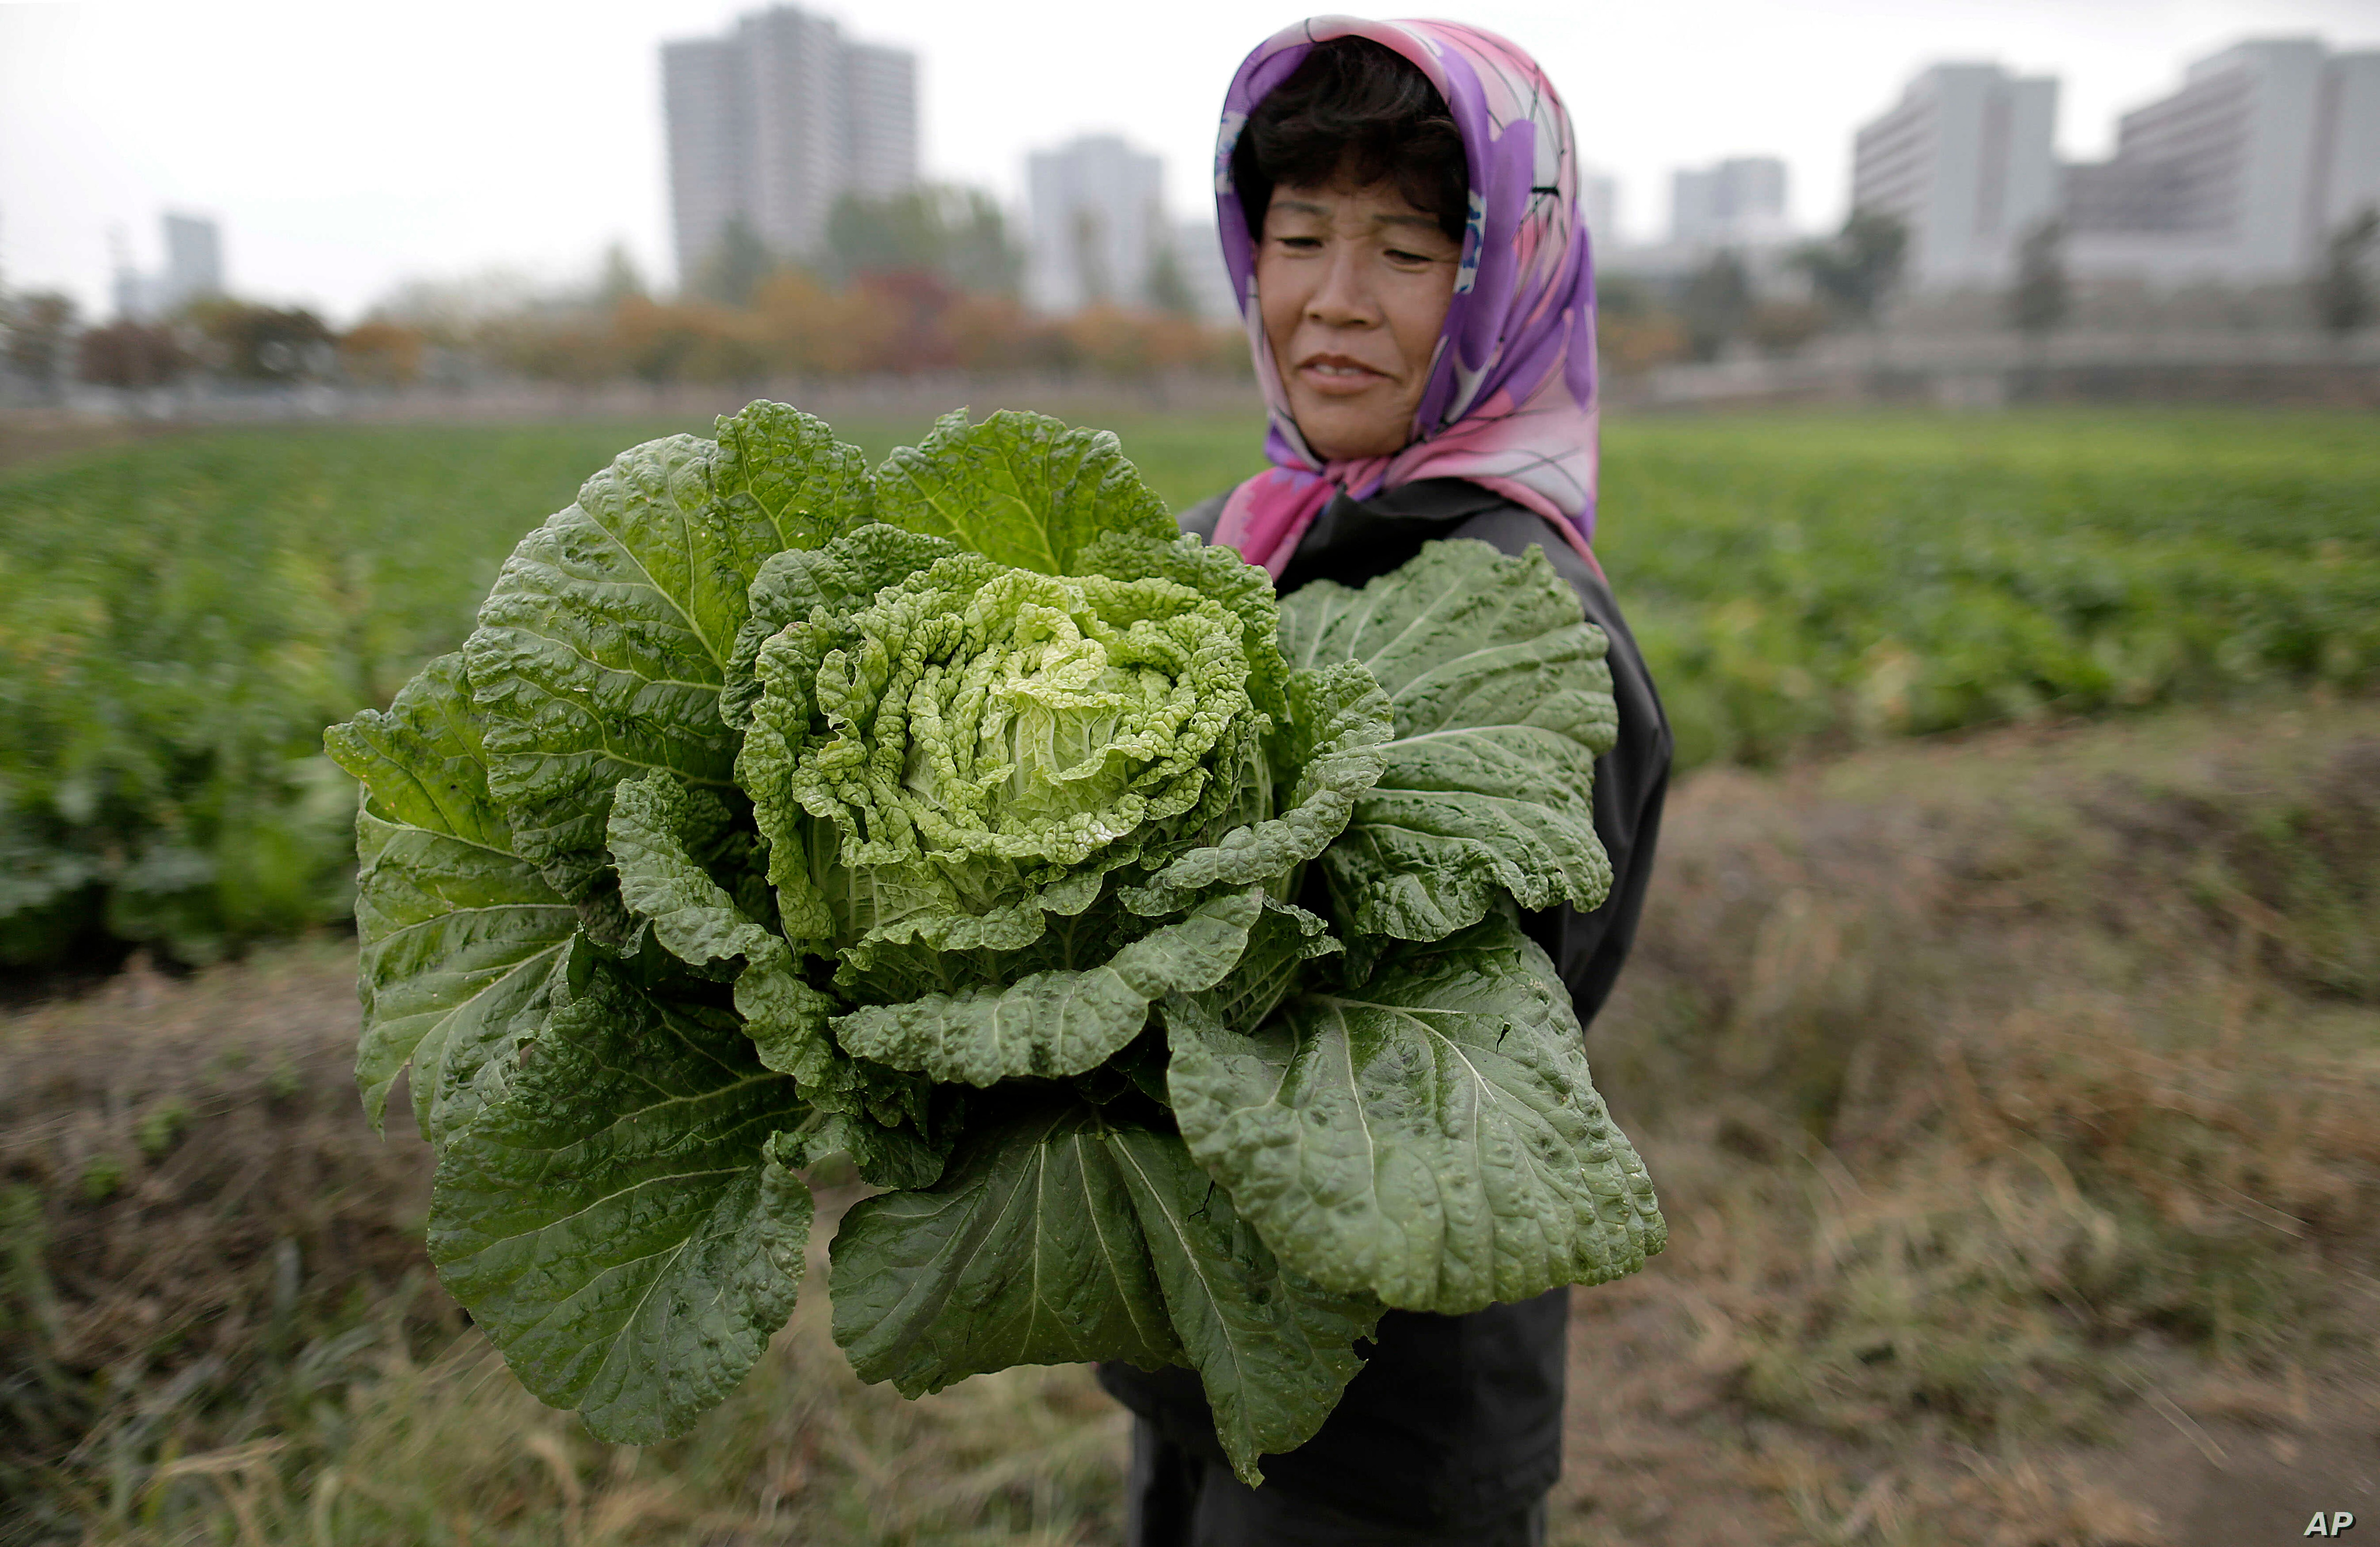 A farmer carries a fully grown cabbage after plucking it out from the main crop which will be harvested early next month, and used to make Kimchi, at the Chilgol vegetable farm on the outskirts of Pyongyang, North Korea, Oct. 24, 2014.